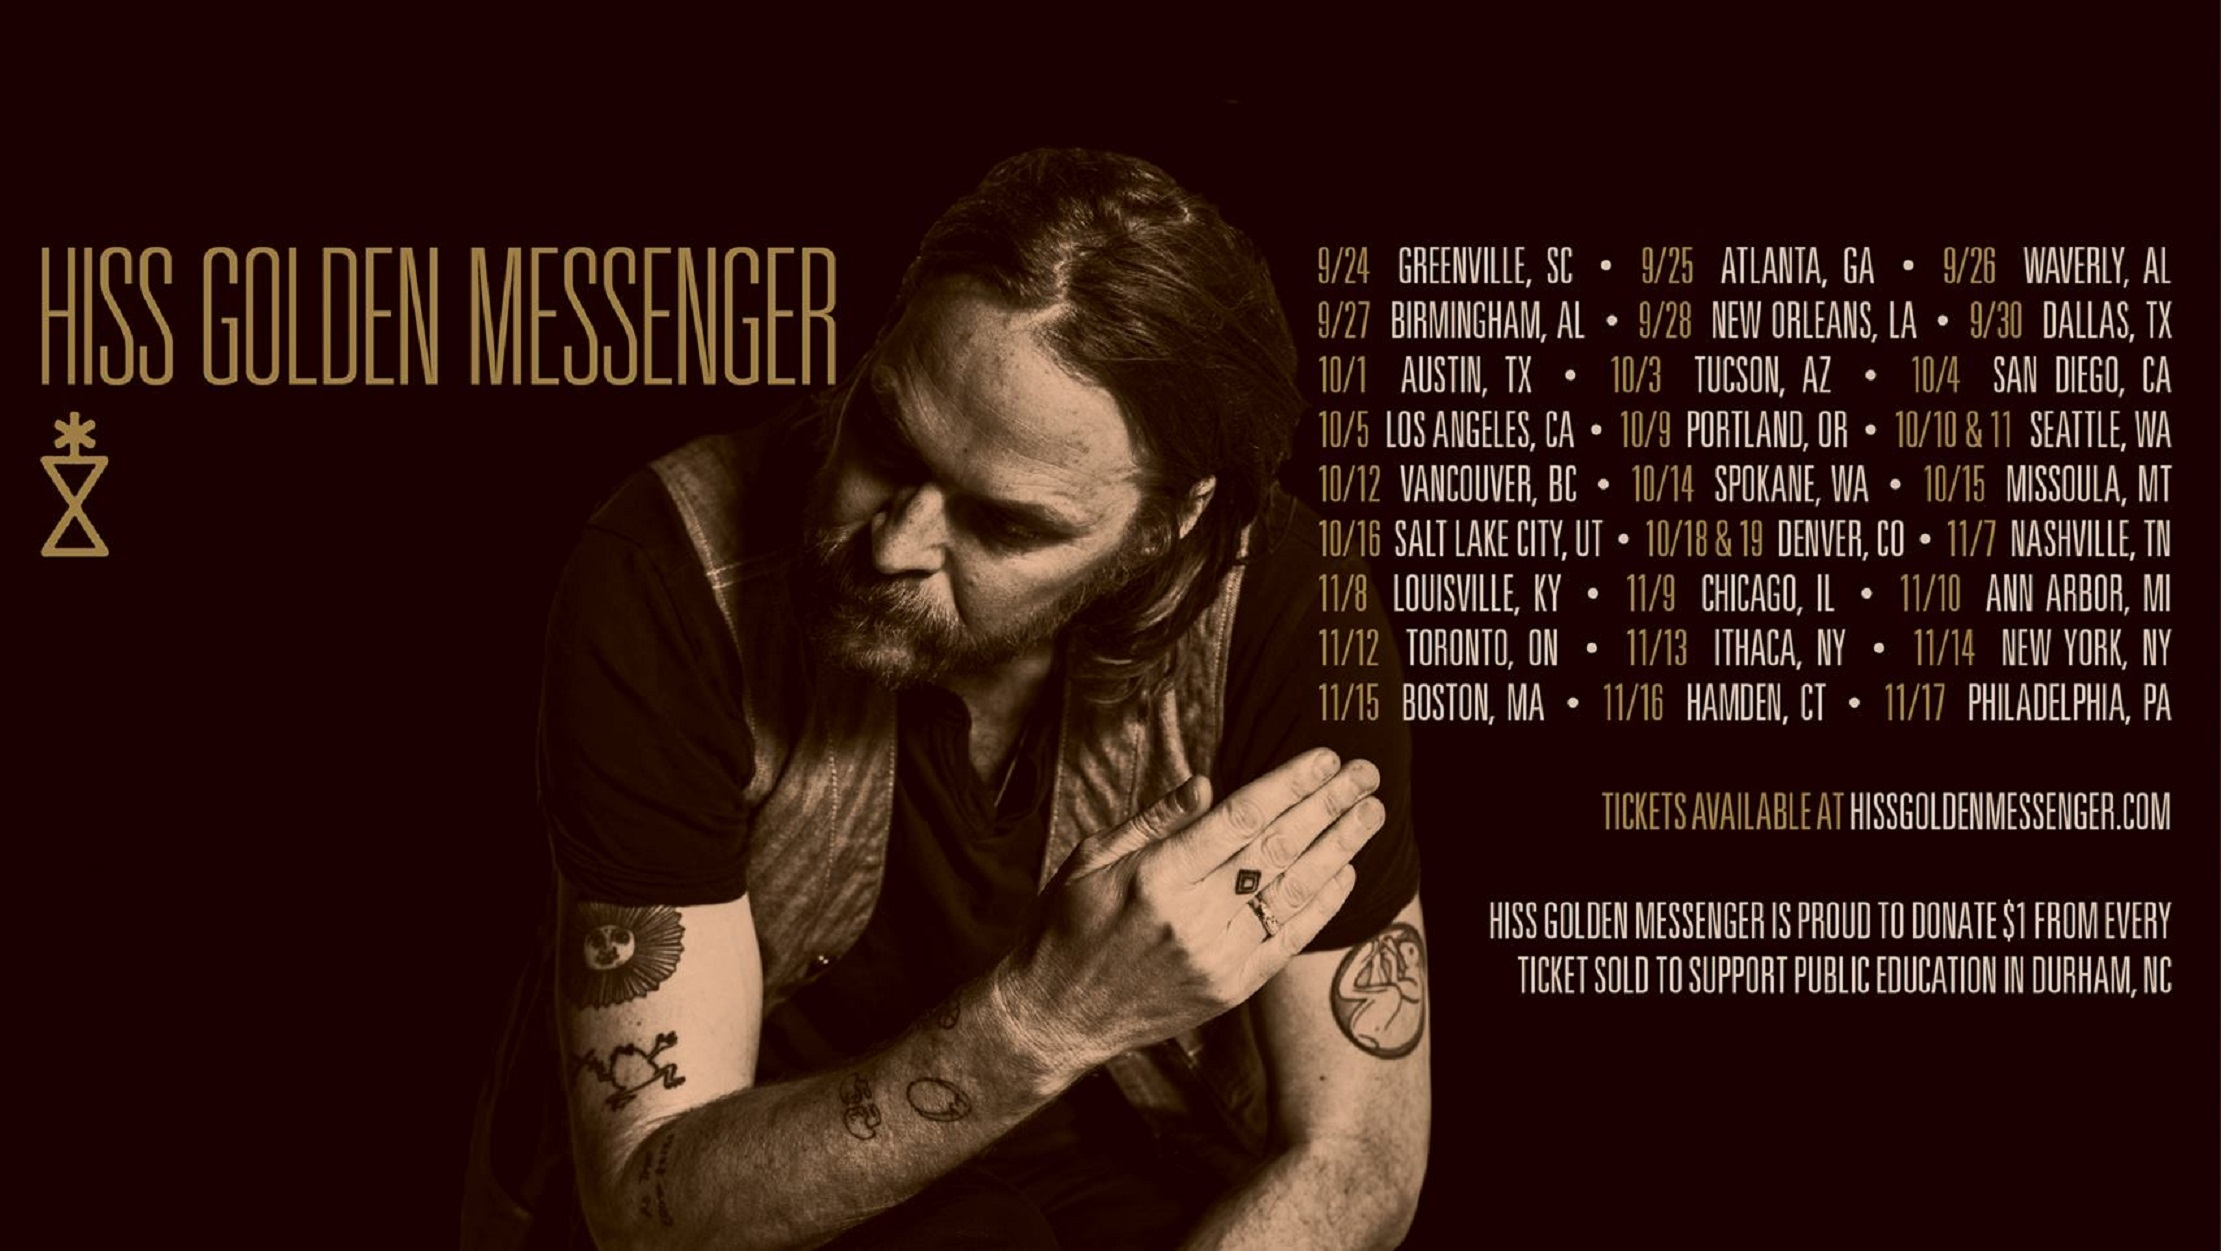 Hiss Golden Messenger Announces Big Fall Tour